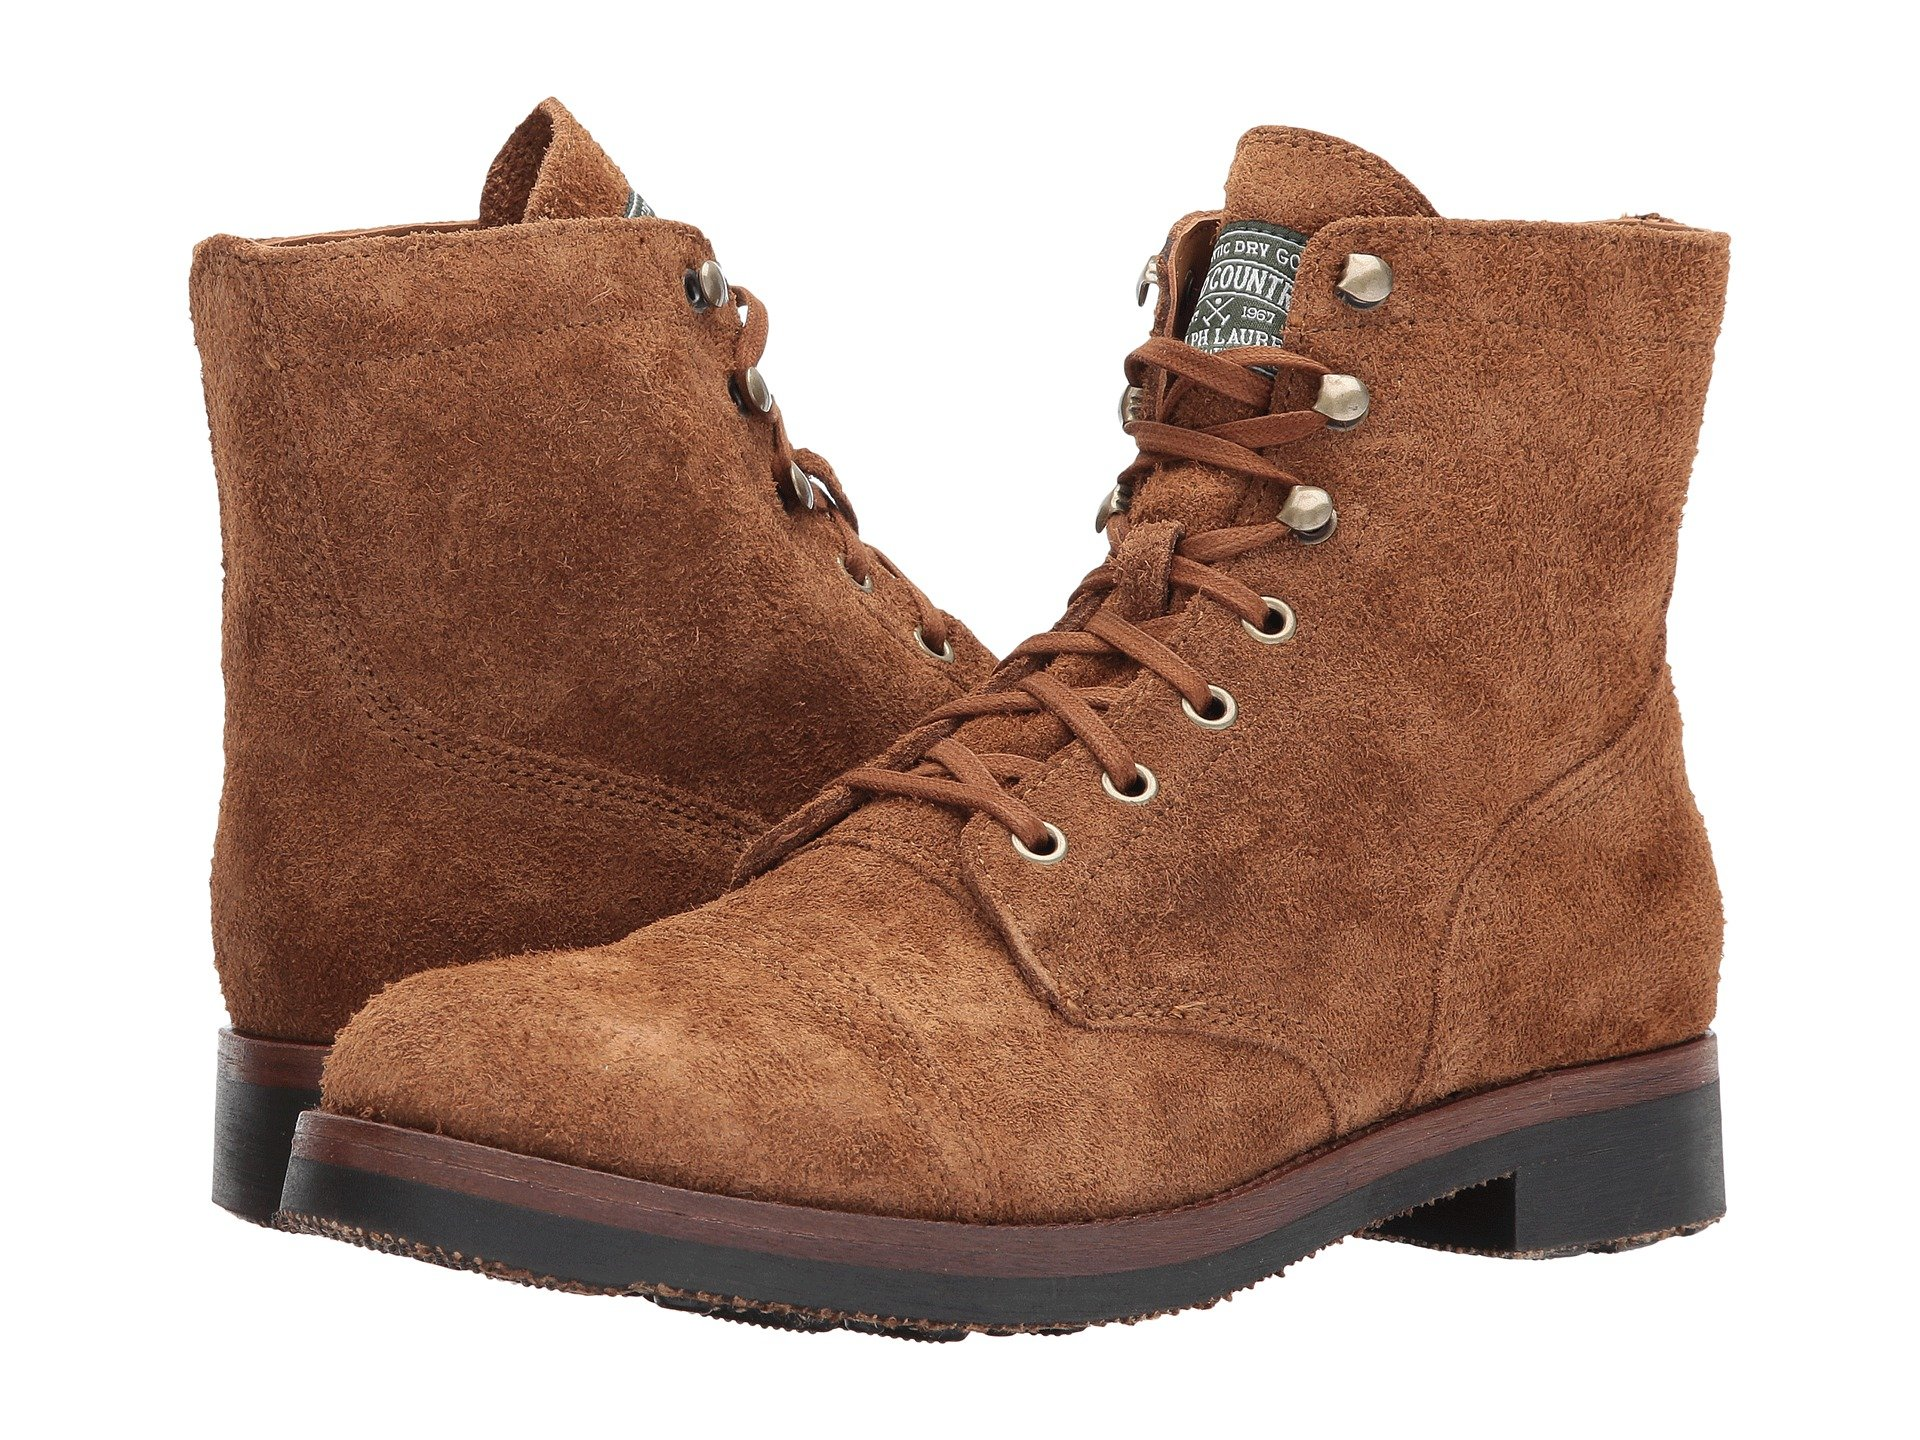 2eddbcec919 Men s Polo Ralph Lauren Lace Up Boots + FREE SHIPPING